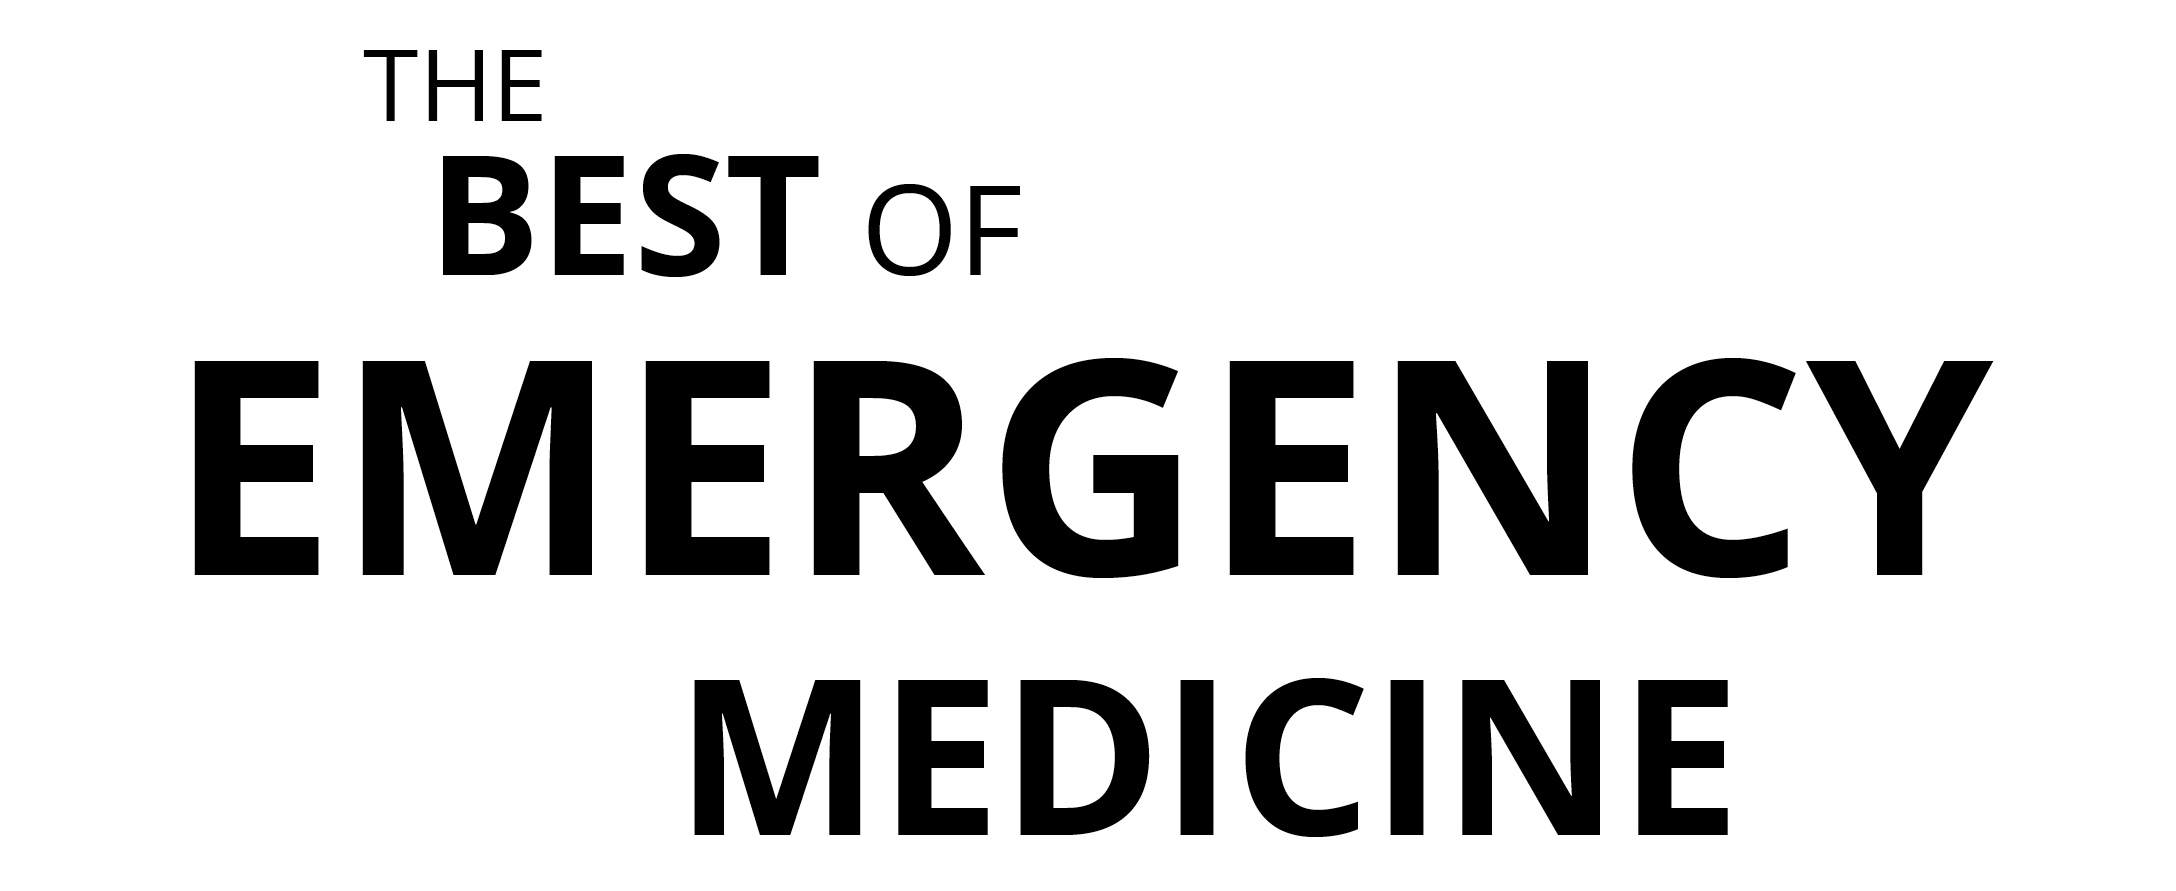 The Best of Emergency Medicine